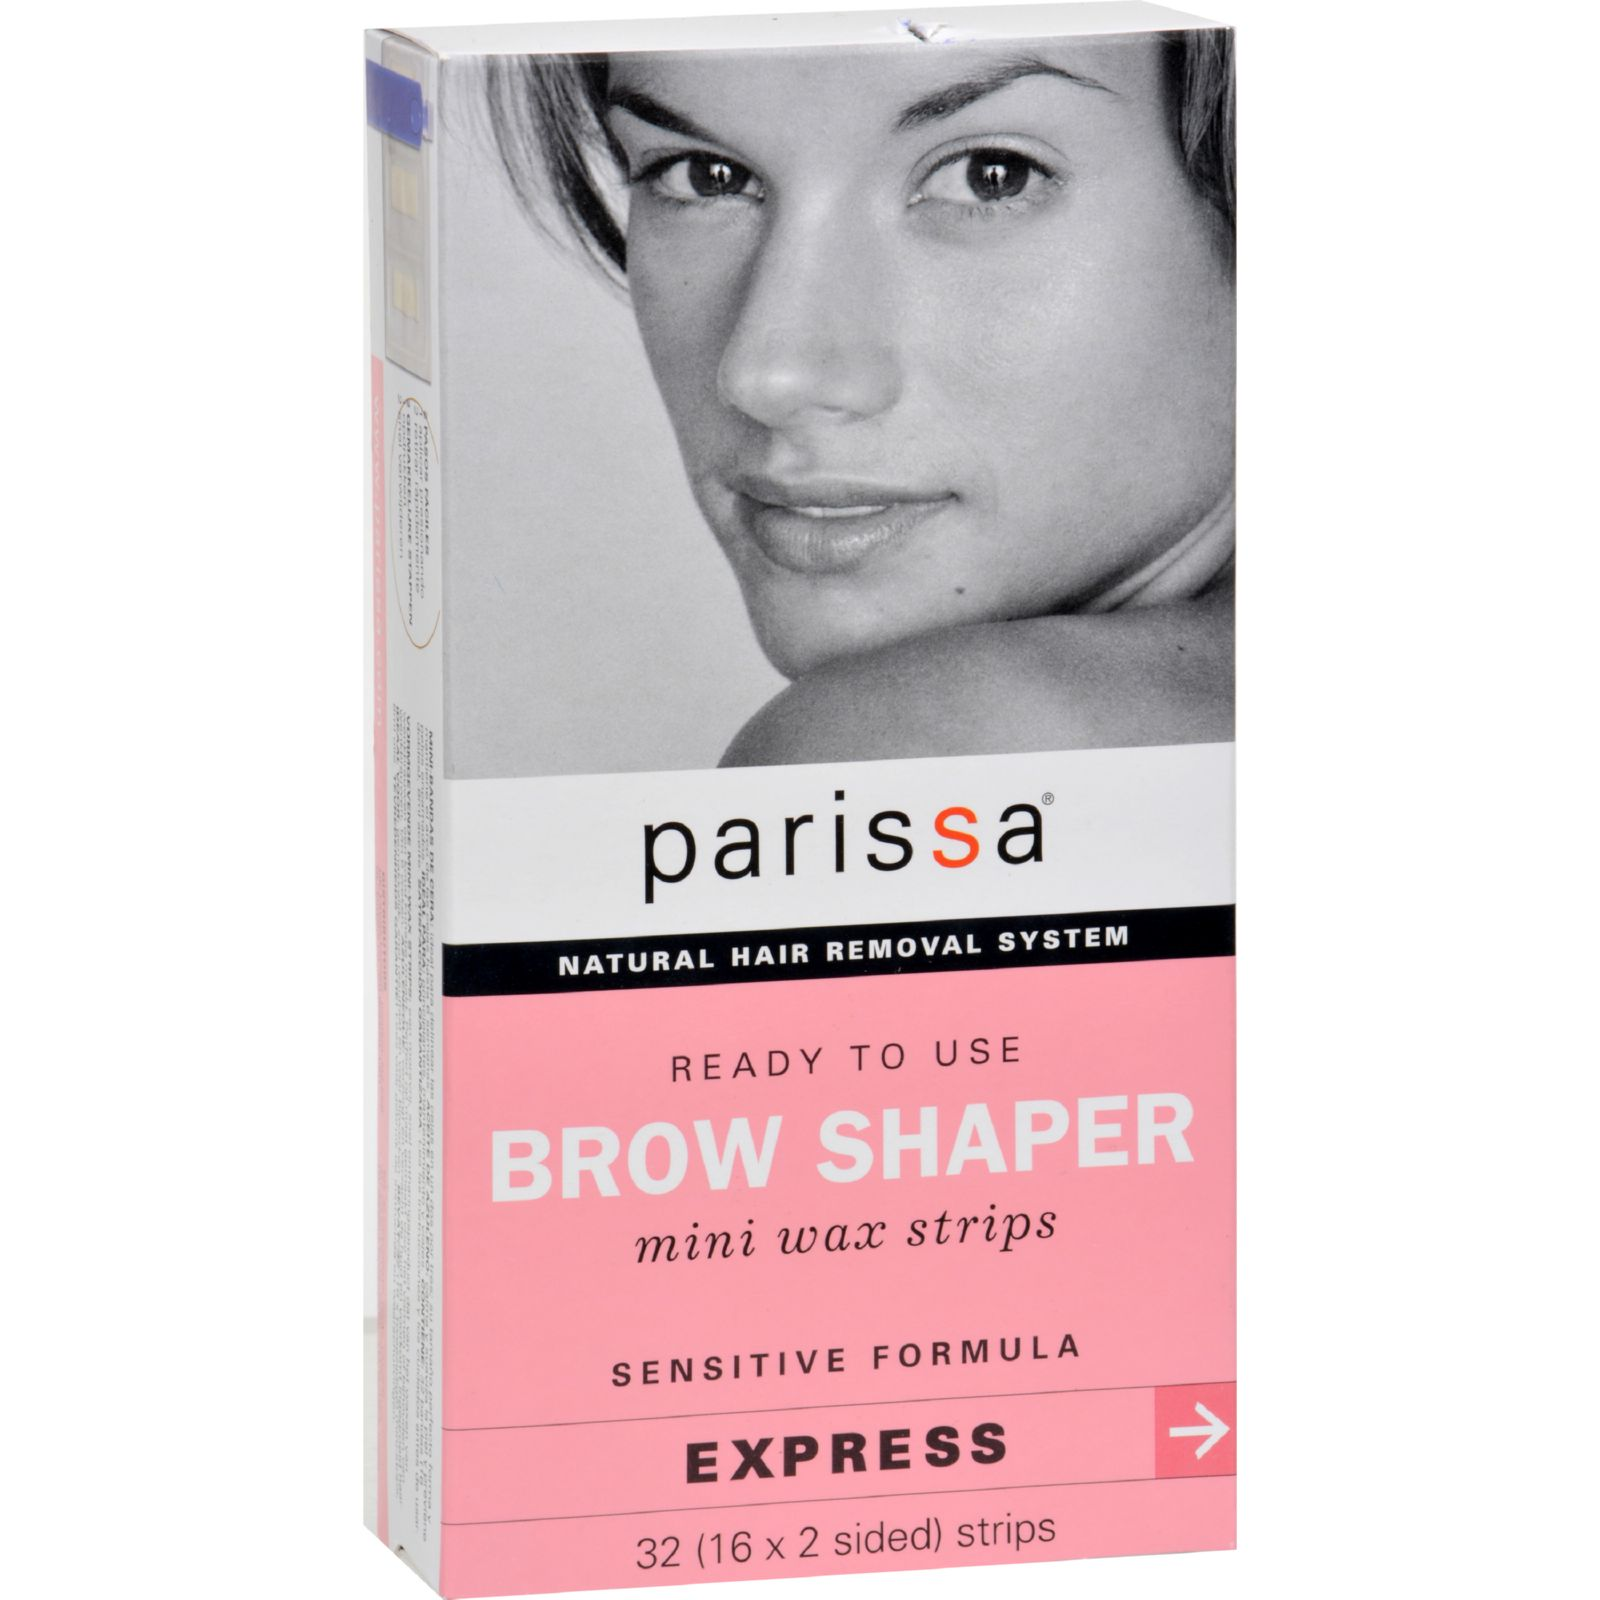 Parissa Natural Hair Removal System Brow Shaper 32 Strips From